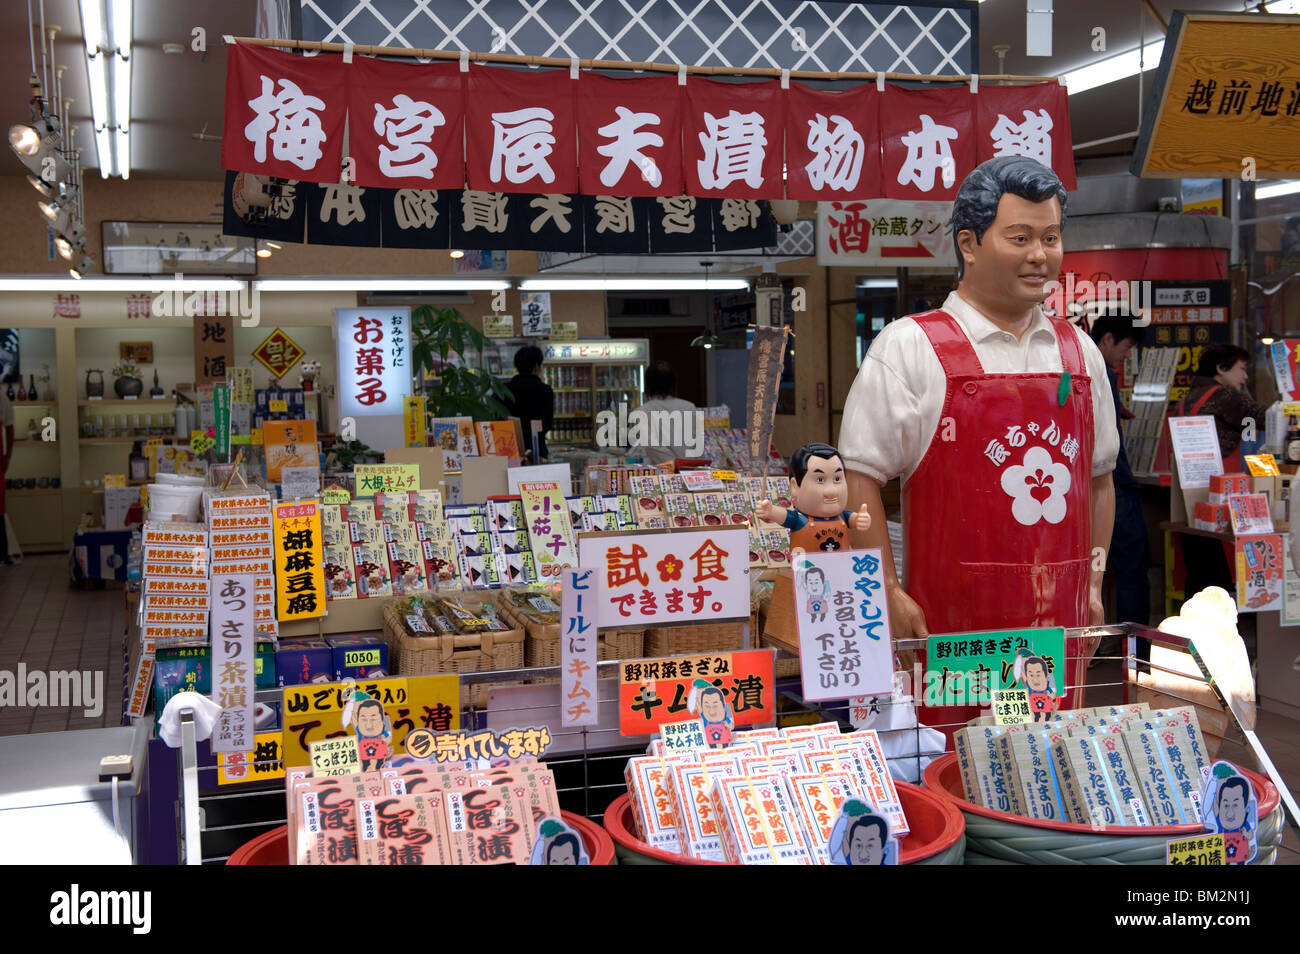 Mannequin of famous Japanese TV personality selling his food products called Tat-chan Zuke at gift shop, Japan - Stock Image